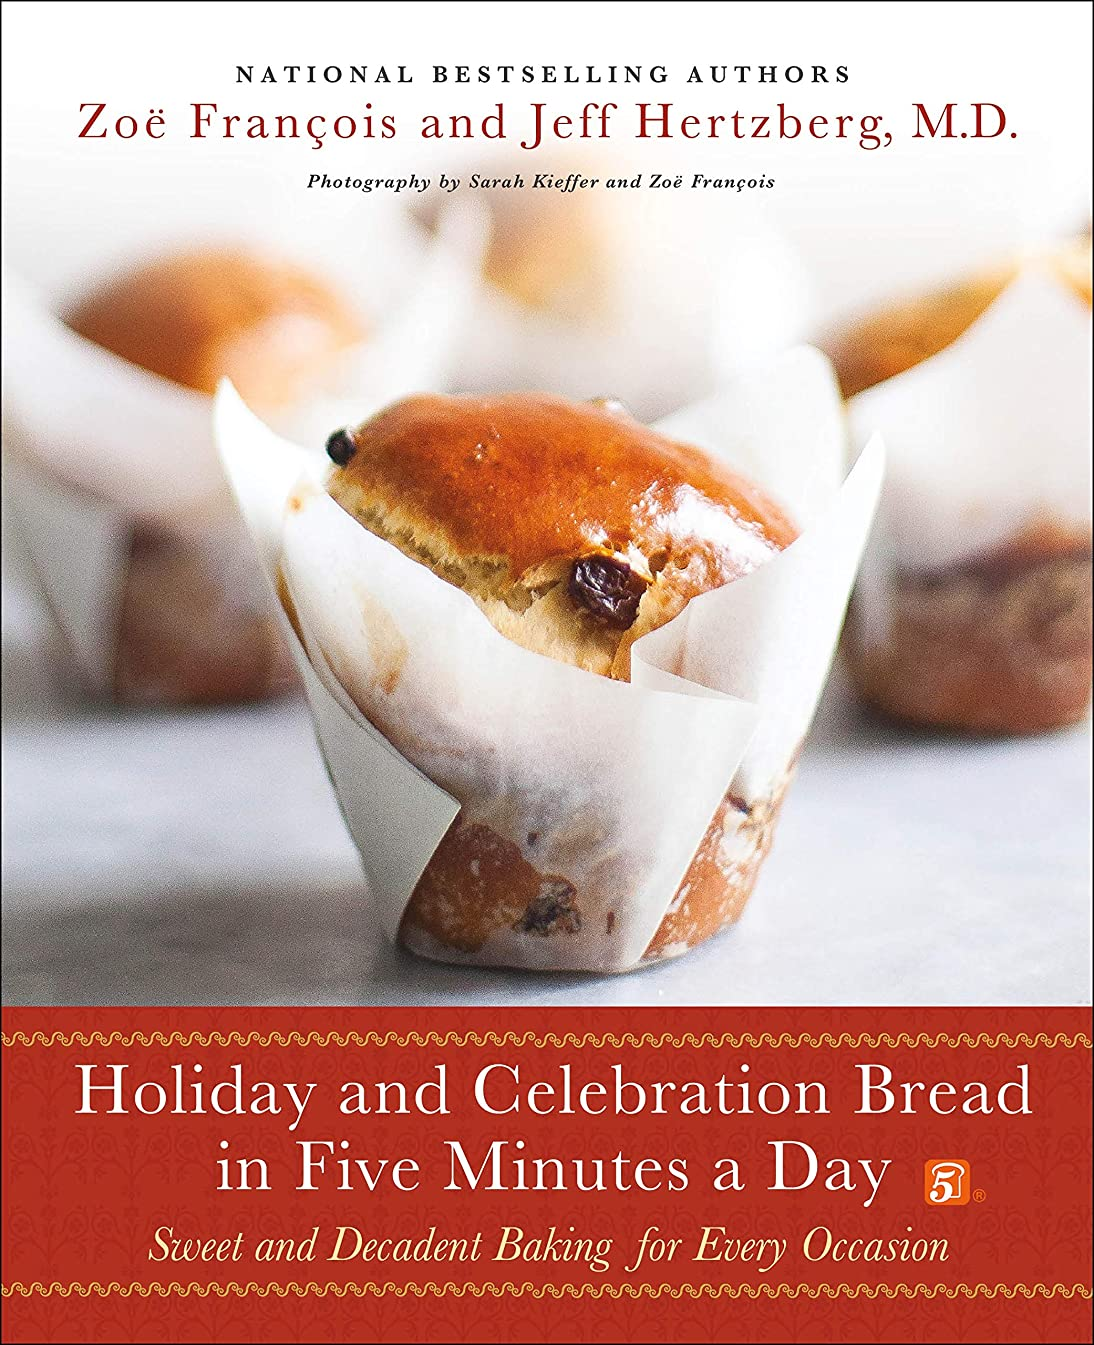 Holiday and Celebration Bread in Five Minutes a Day: Sweet and Decadent Baking for Every Occasion